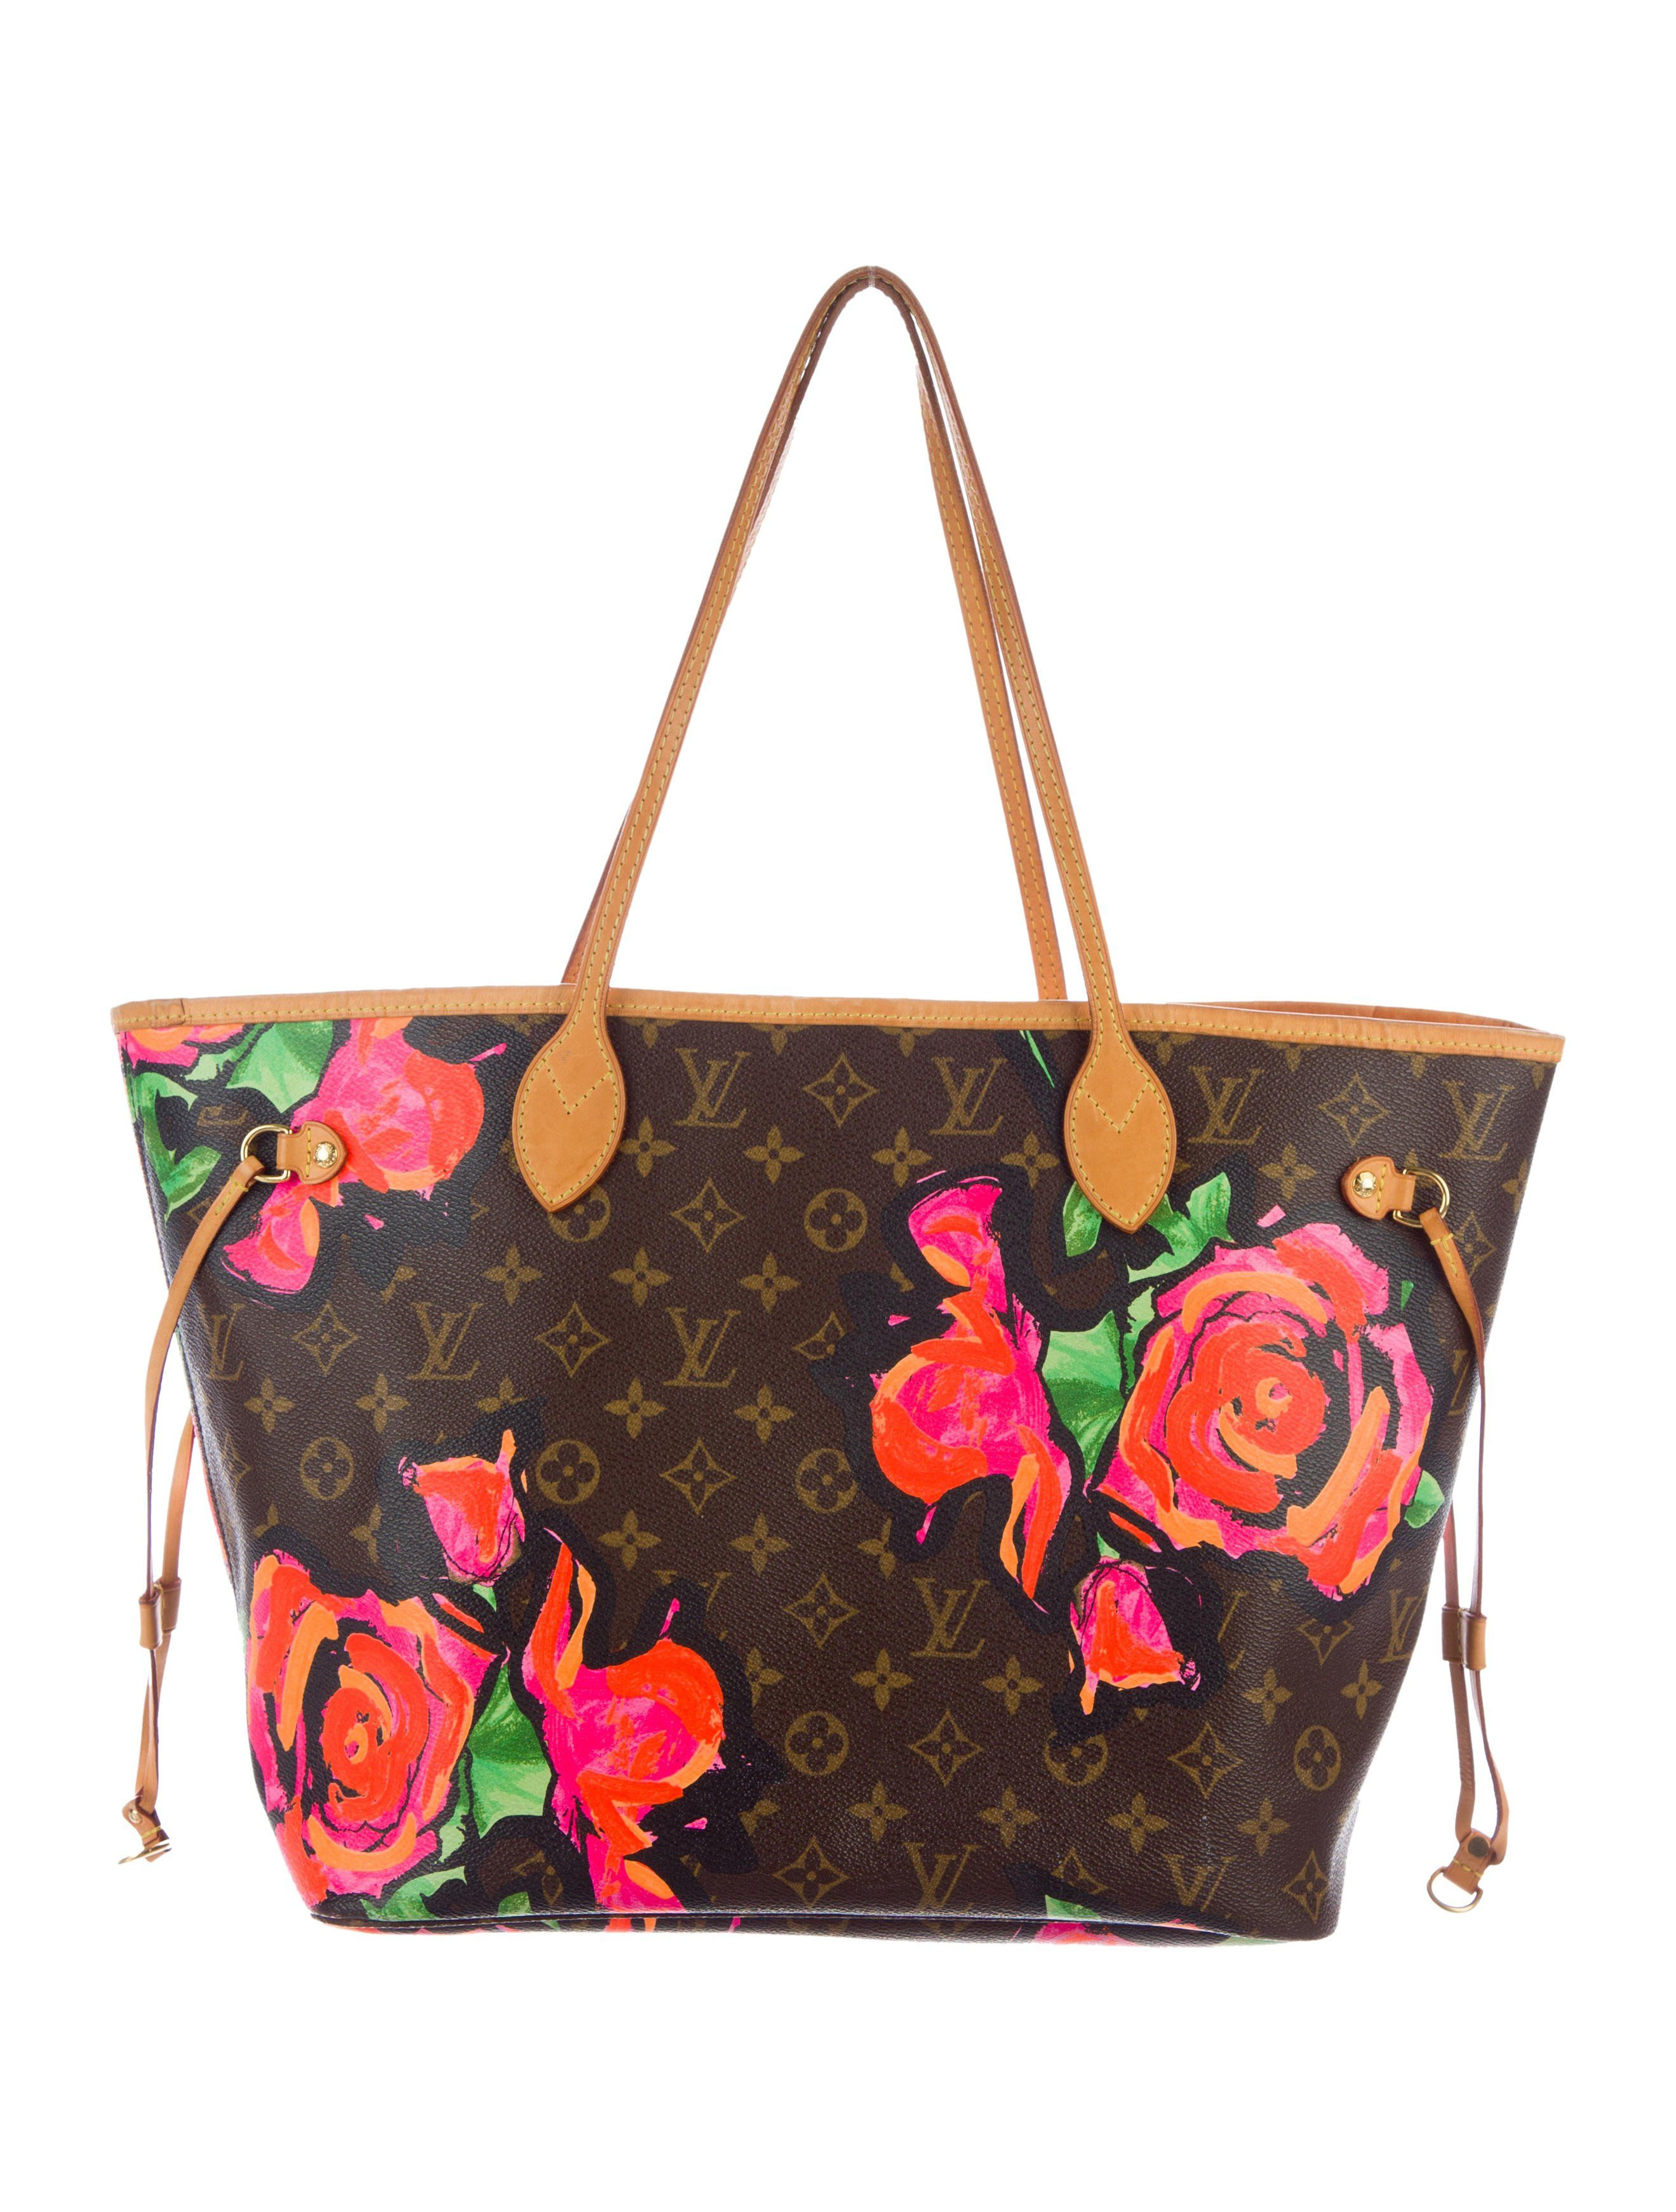 65d19ecdf55ba Obsessed. Limited Edition. From the Stephen Sprouse Collection. Brown and  tan monogram coated canvas Louis Vuitton Roses Neverfull MM with brass  hardware